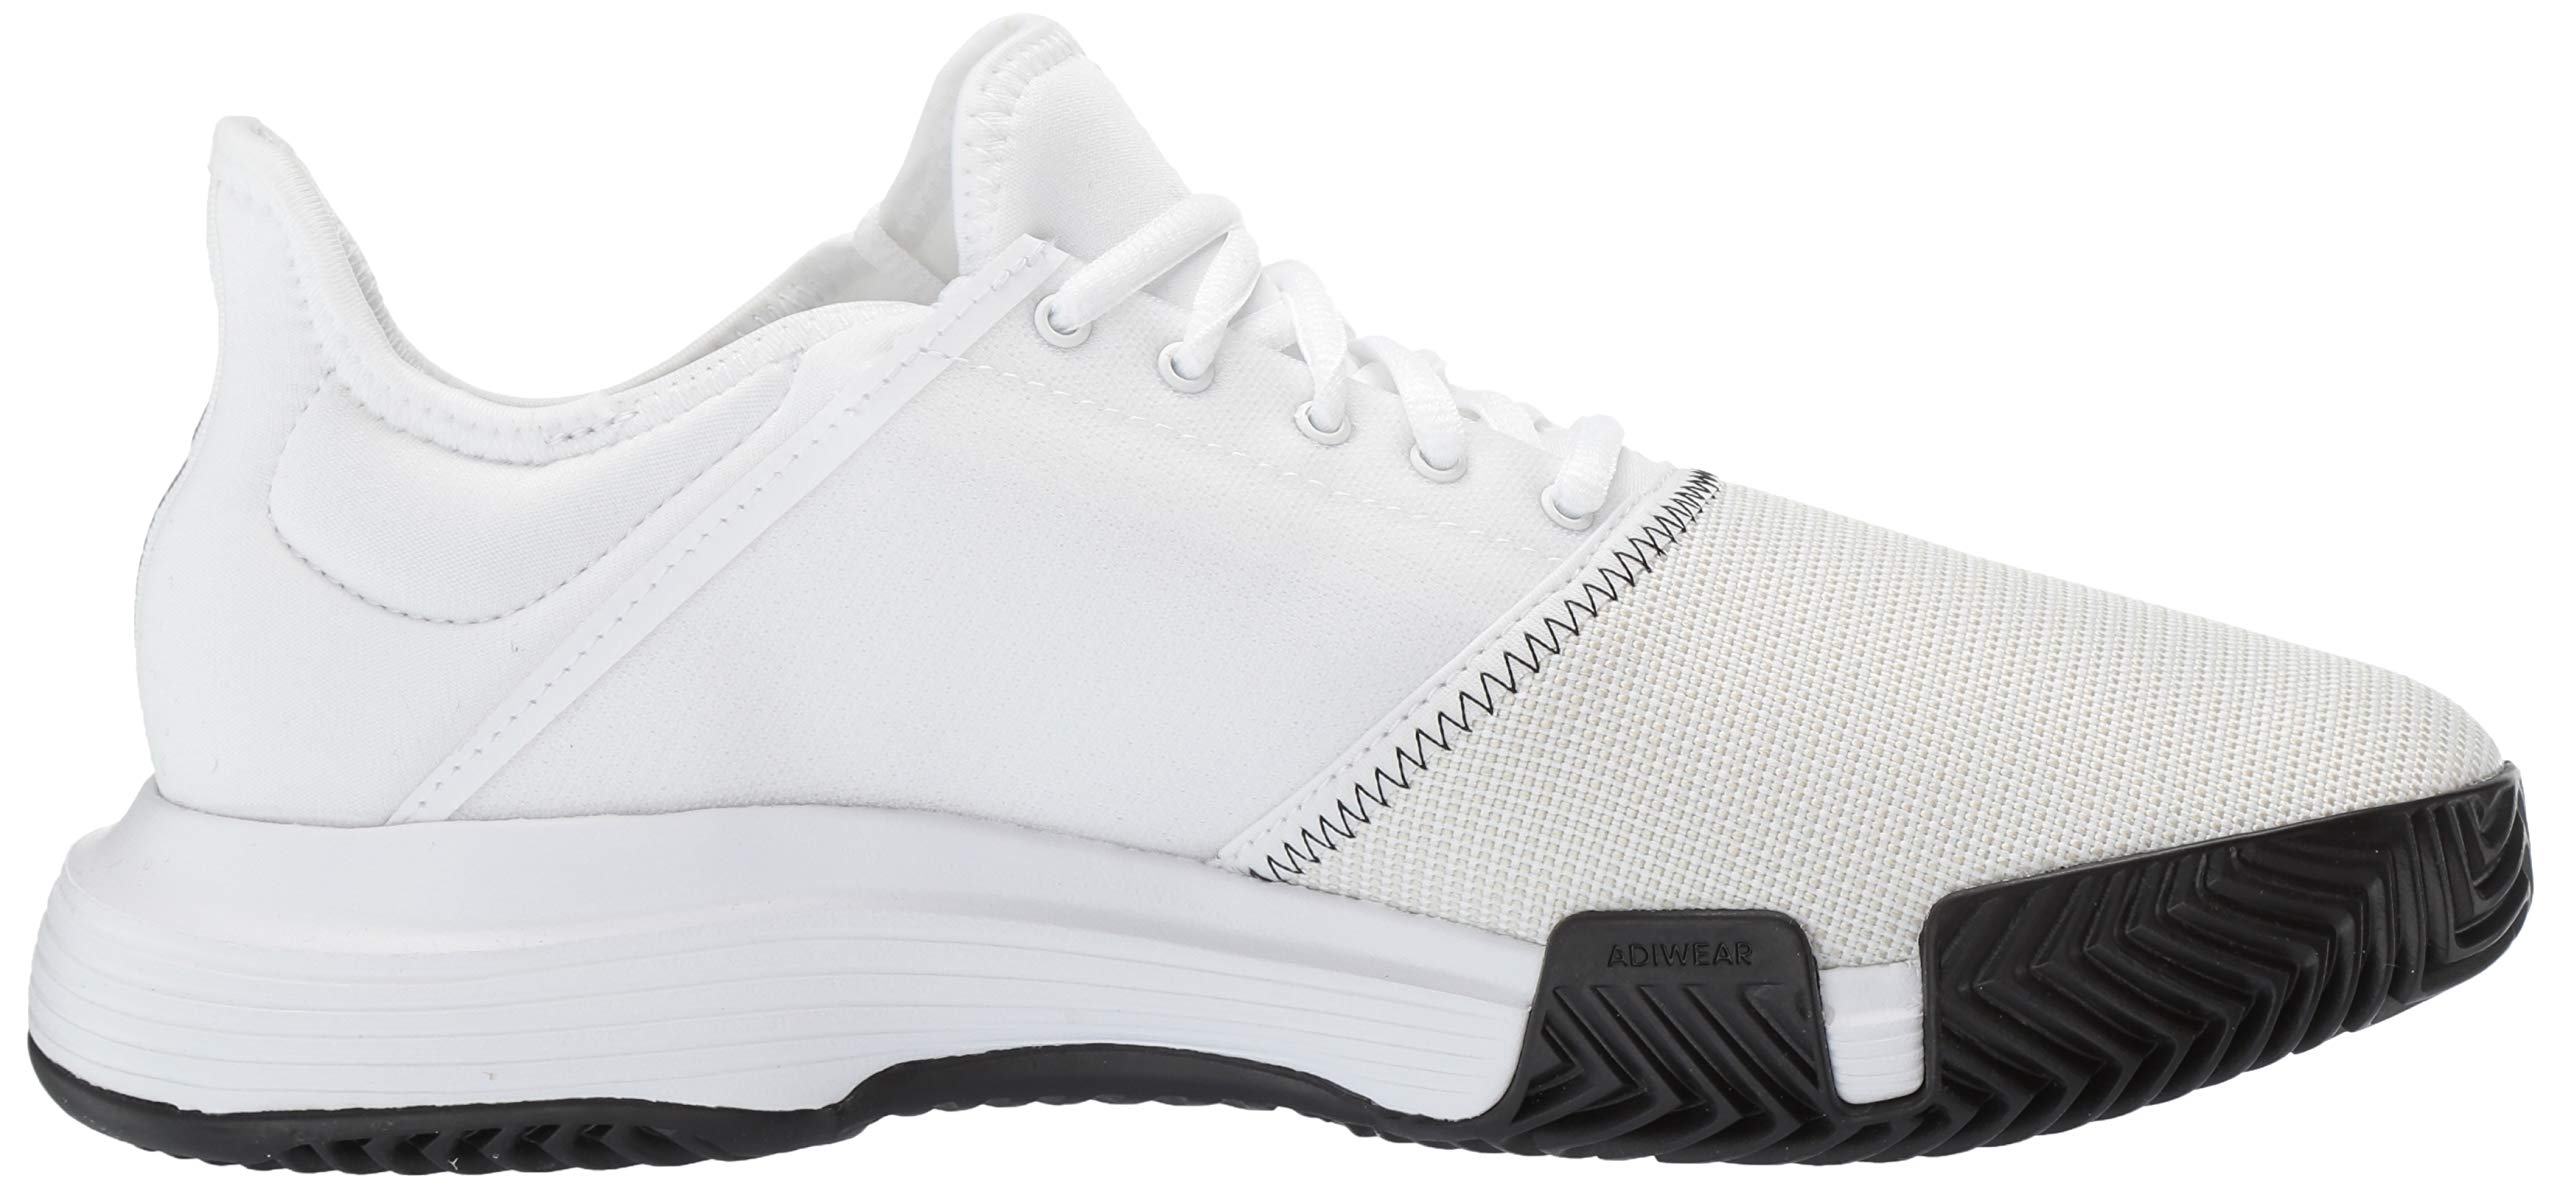 adidas Men's Gamecourt, White/Black/Grey 6.5 M US by adidas (Image #7)